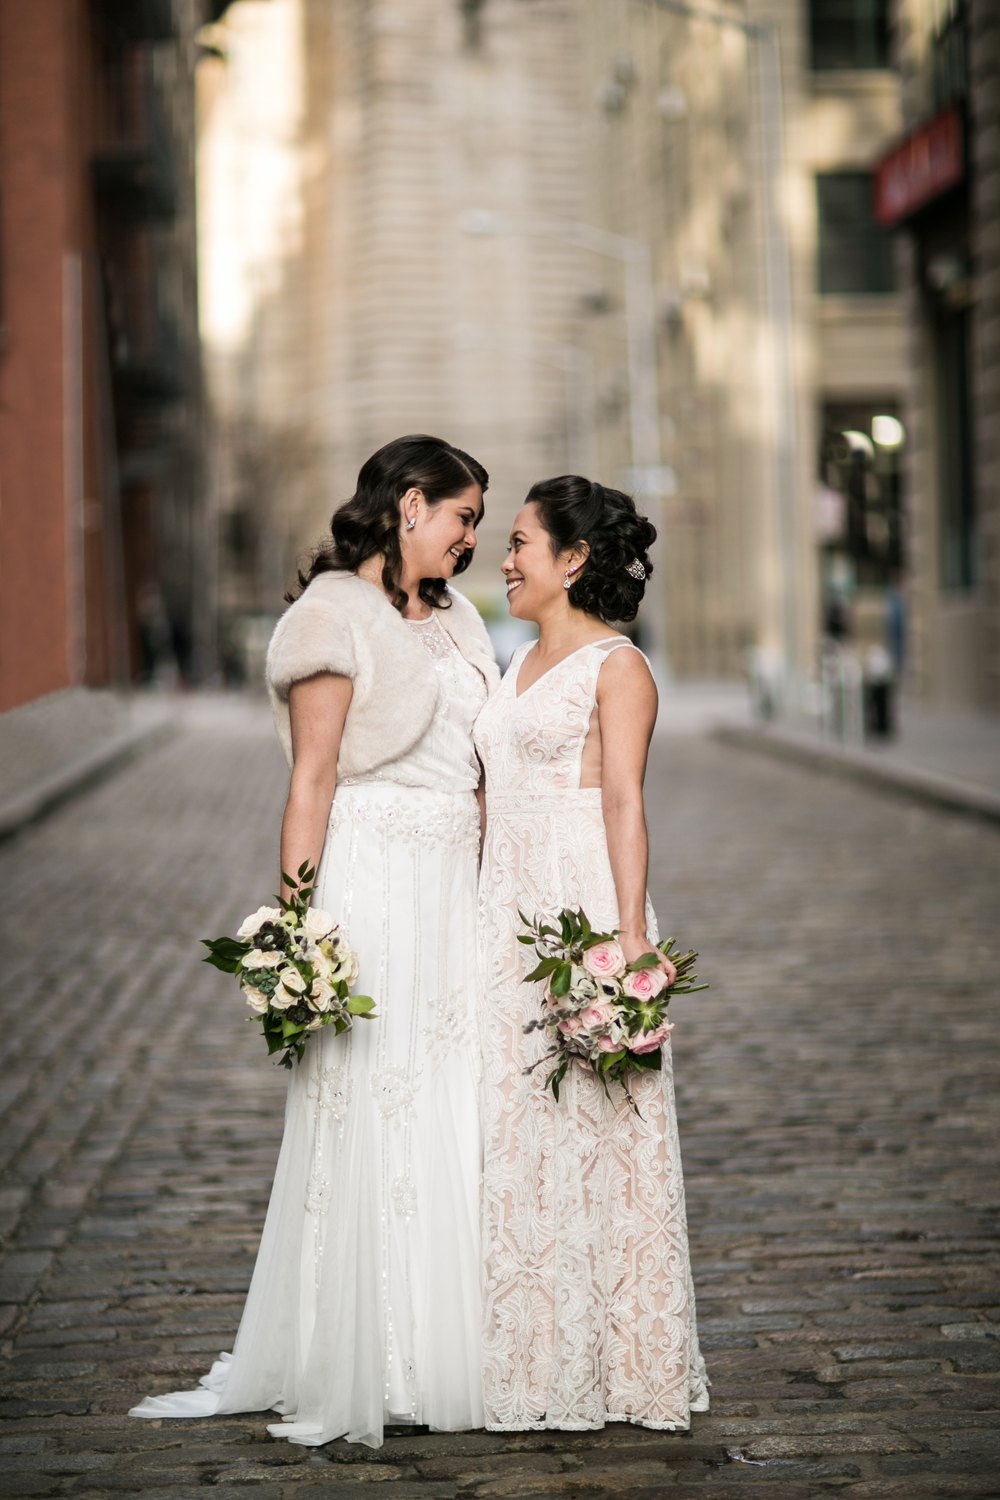 Amber Marlow is a progressive LGBTQ-friendly wedding photographer in Brooklyn New York